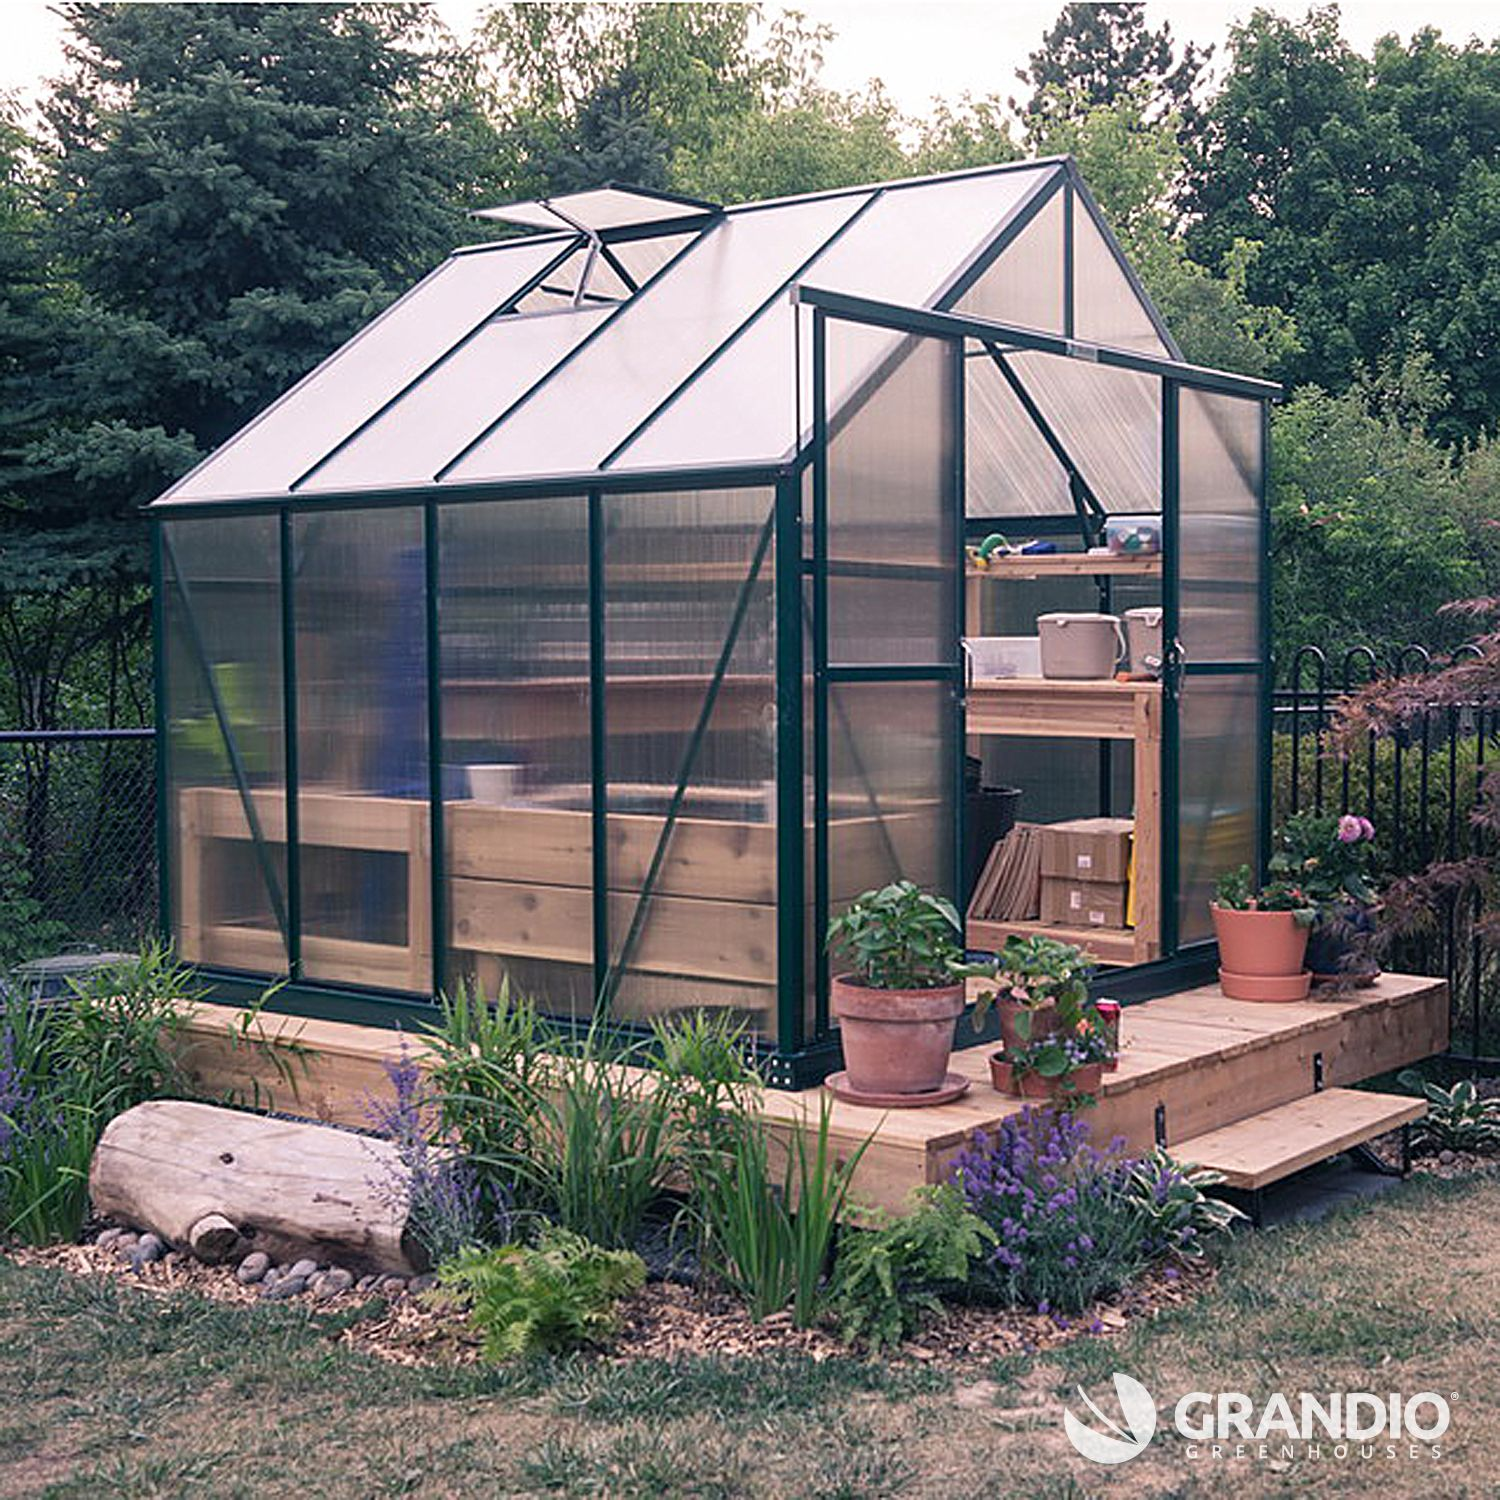 Grandio Ascent Greenhouse installed in Canada. This is a